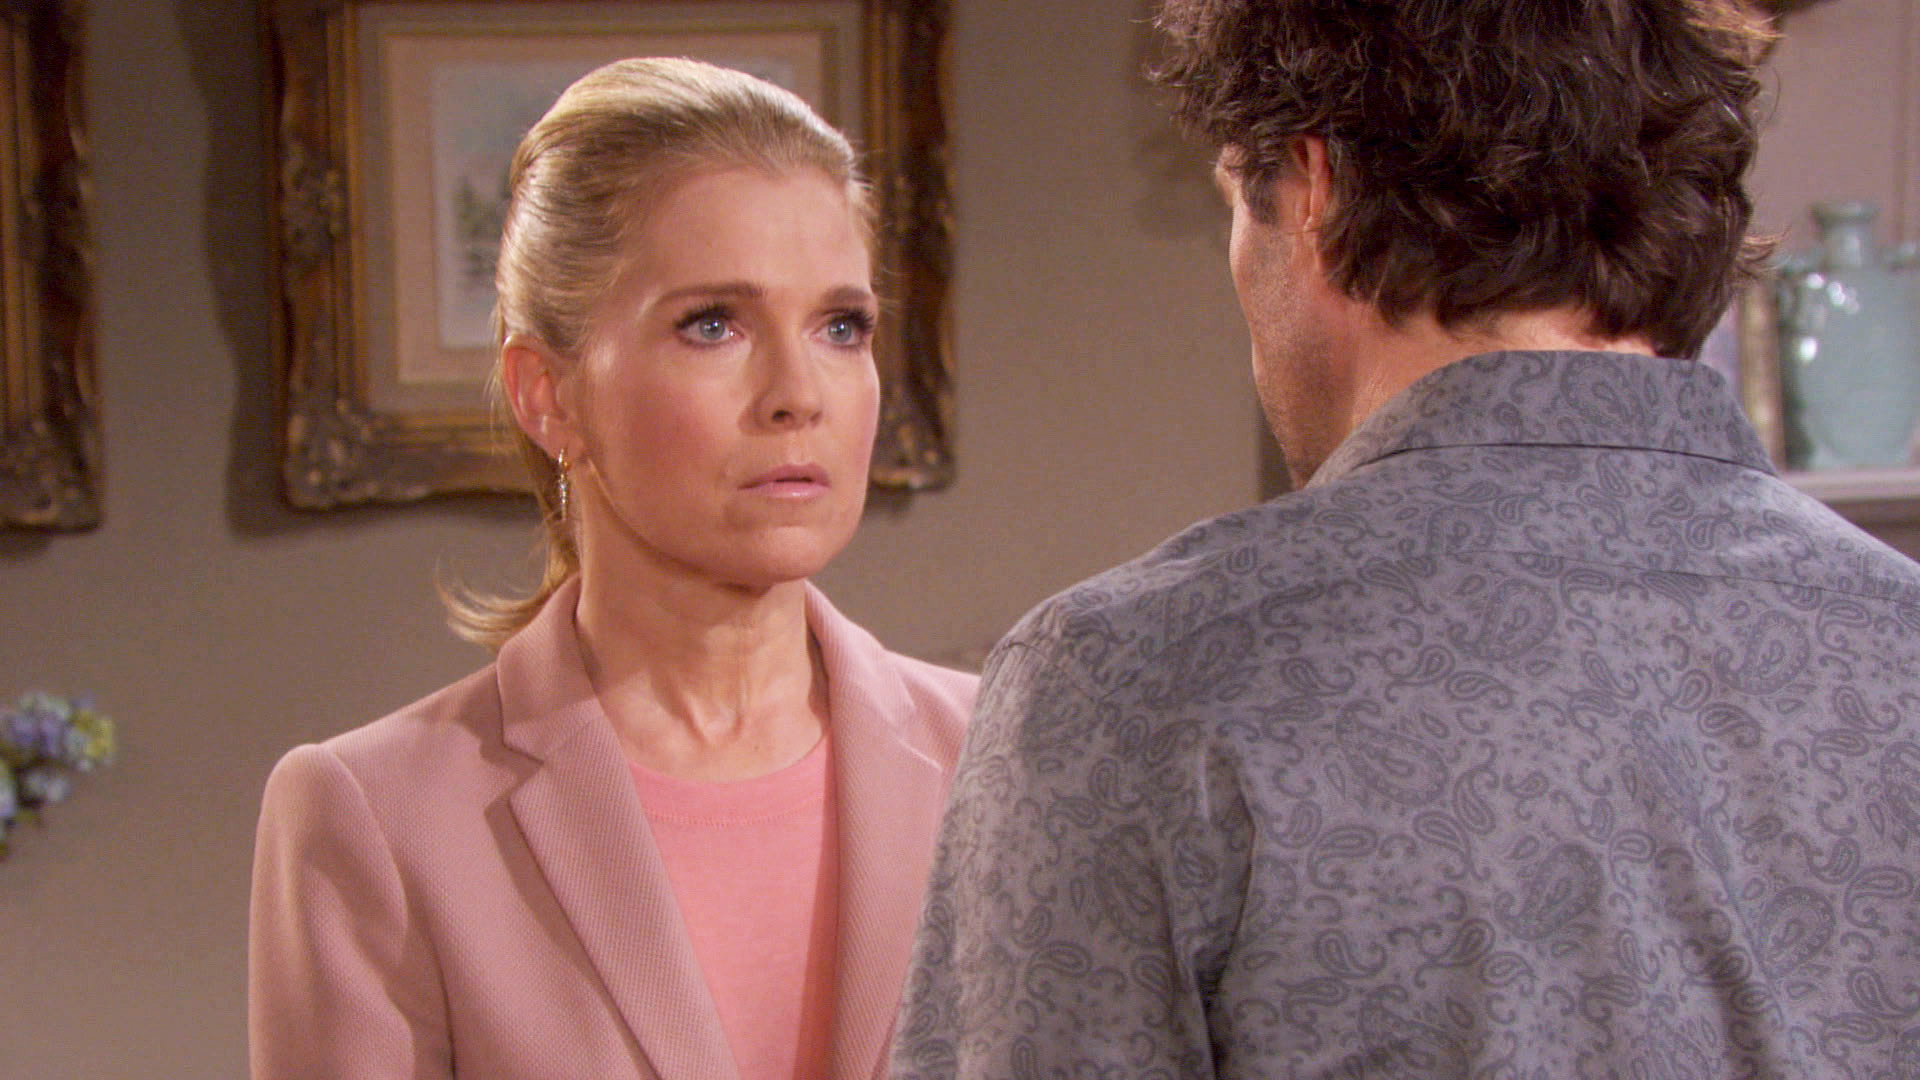 Jennifer makes an admission that deeply wounds Daniel.